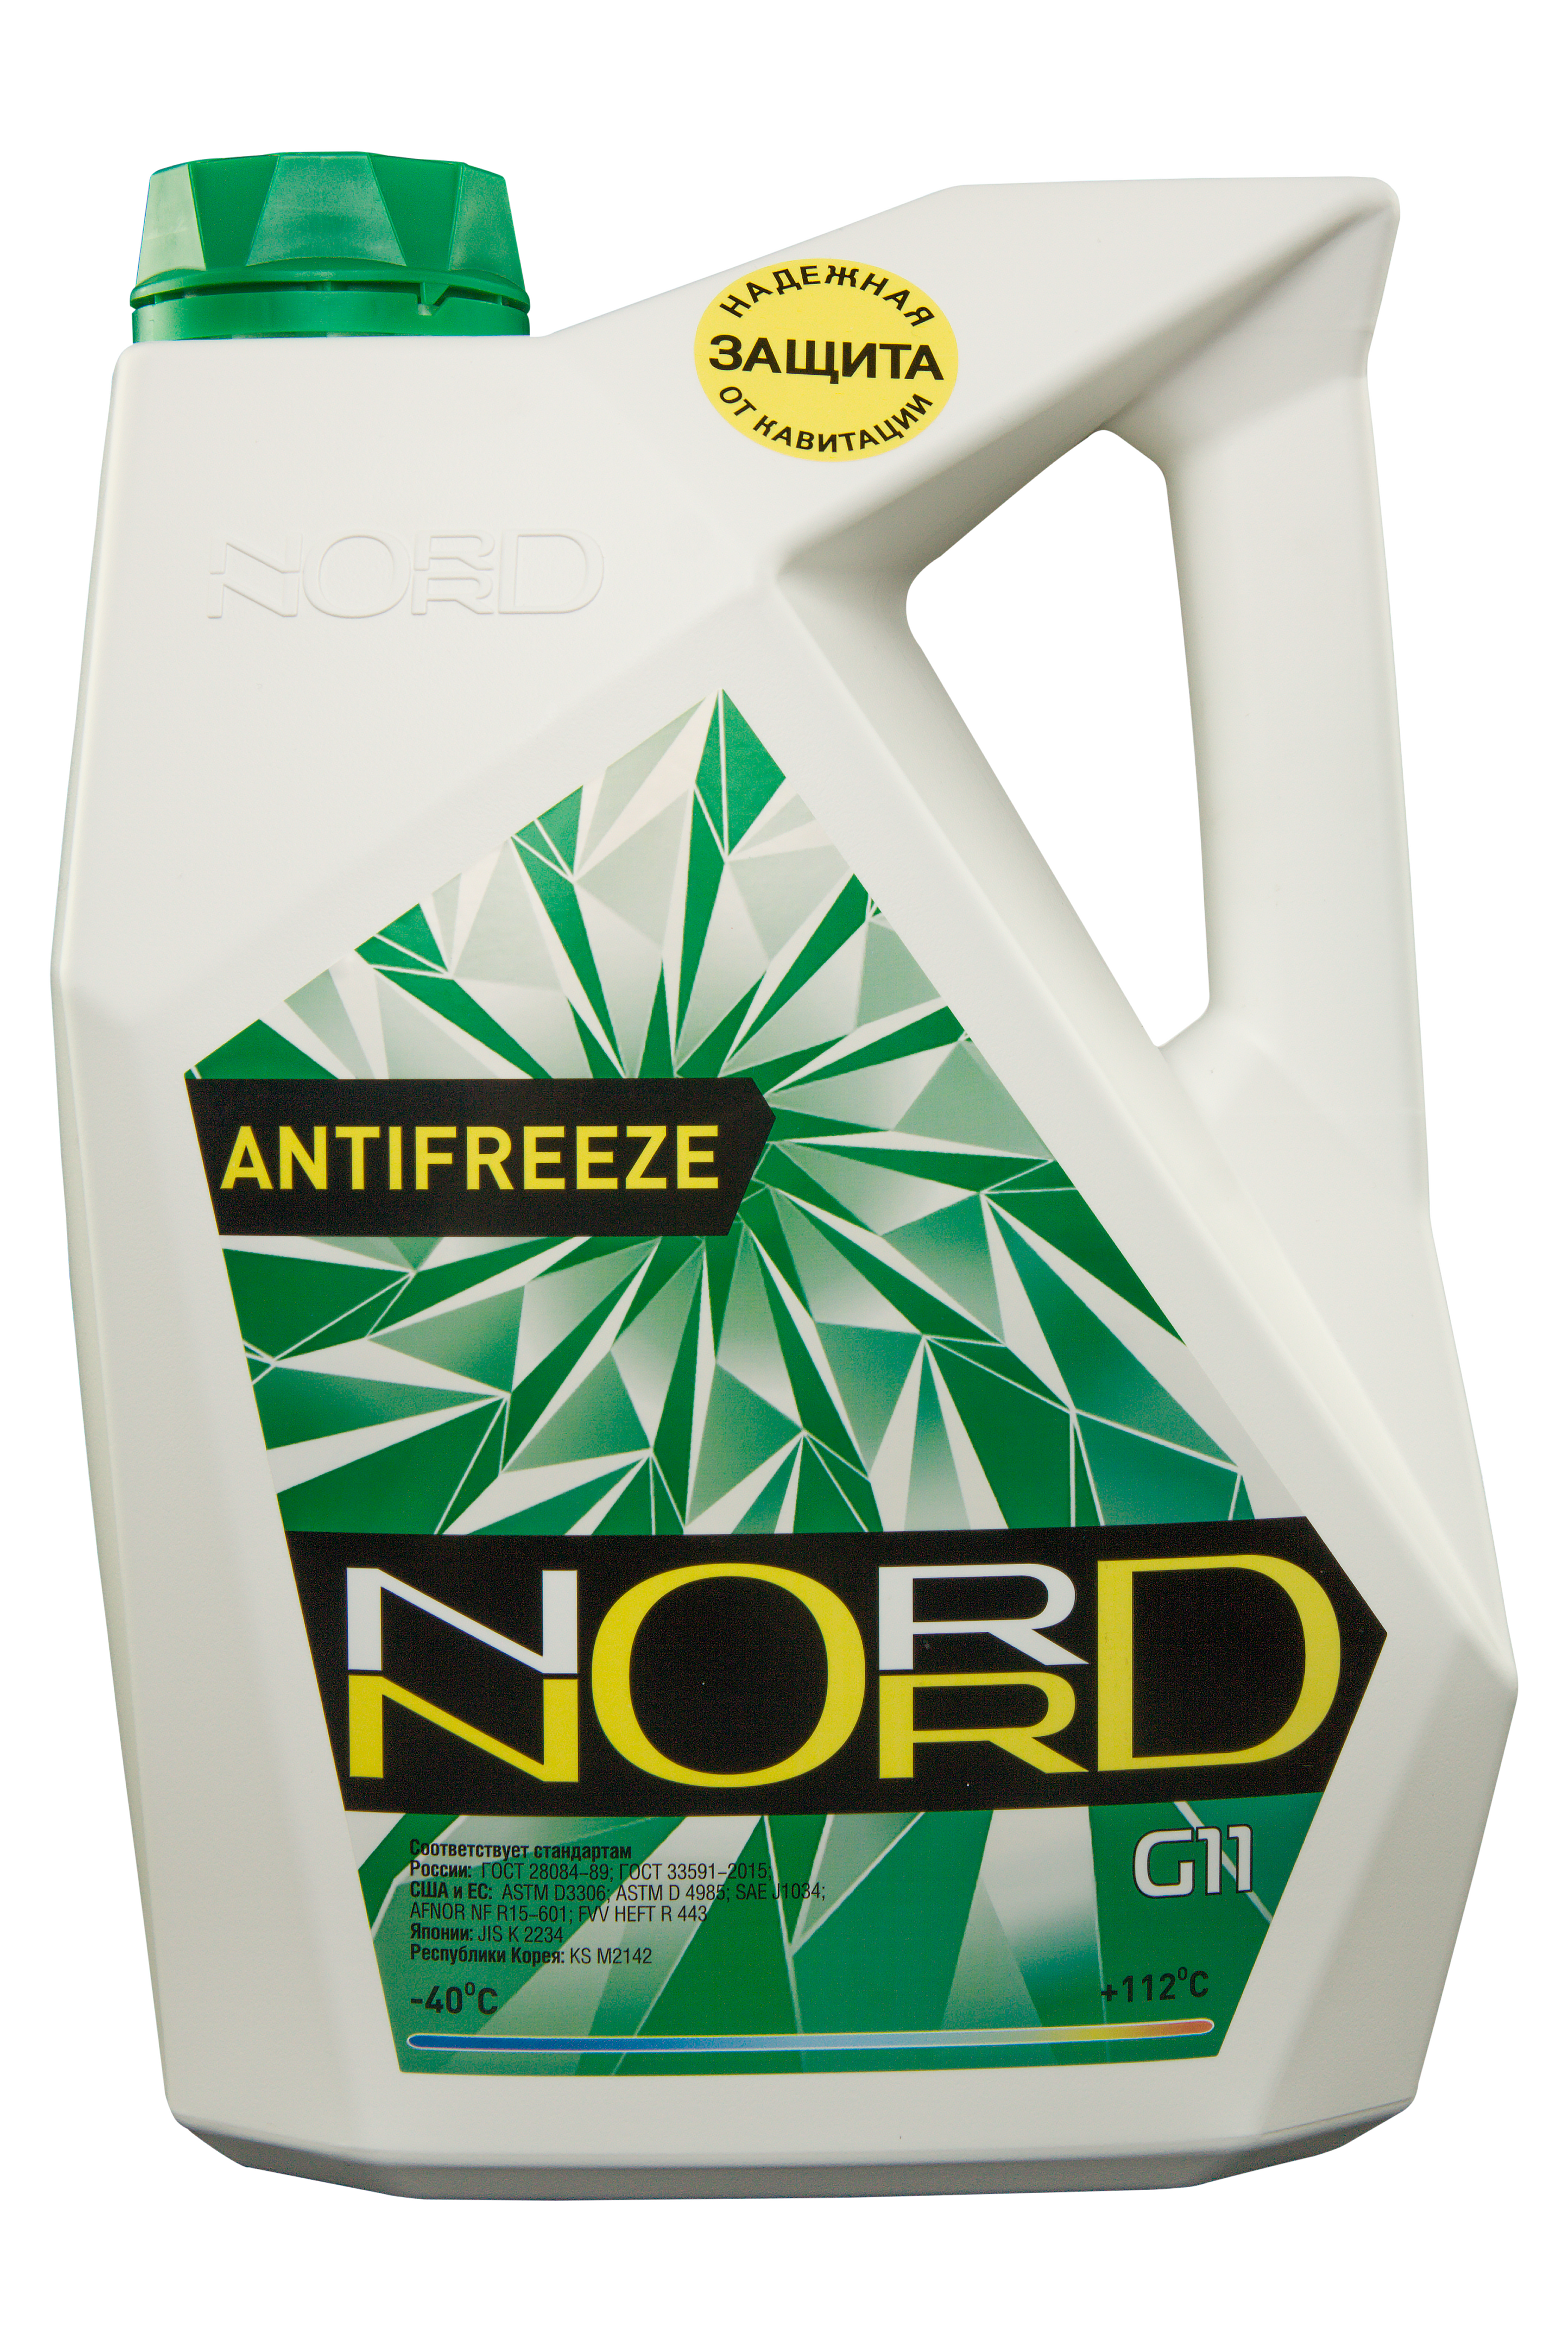 nord NG20362 Антифриз NORD High Quality Antifreeze готовый -40C зеленый 5 кг